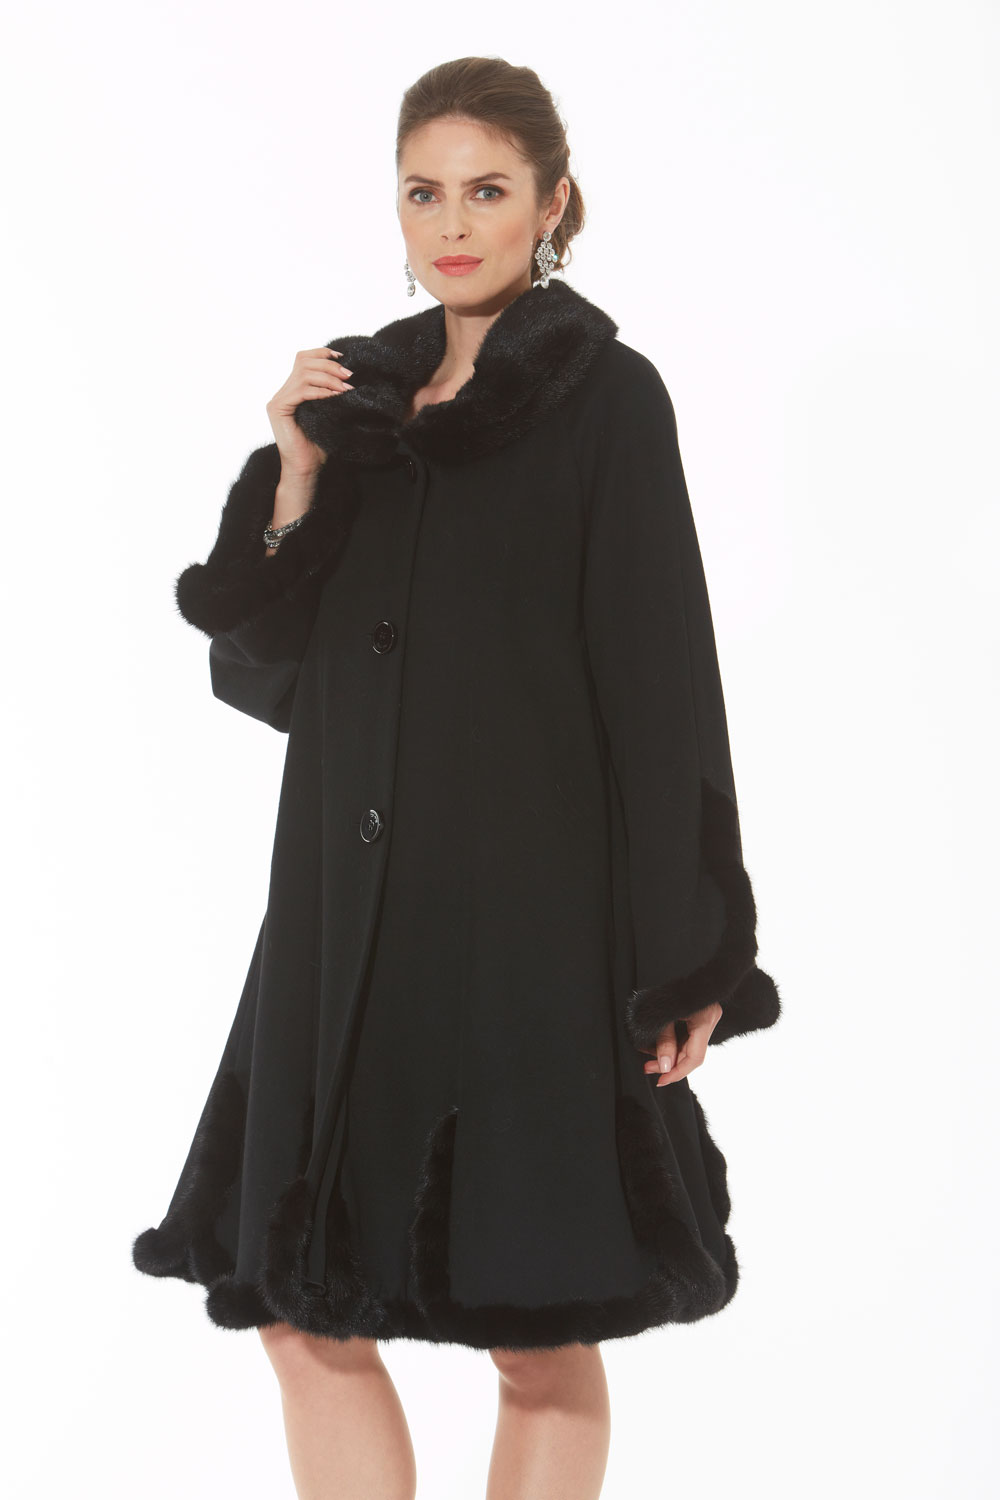 Cashmere and Mink Coat - Scalloped Hemline